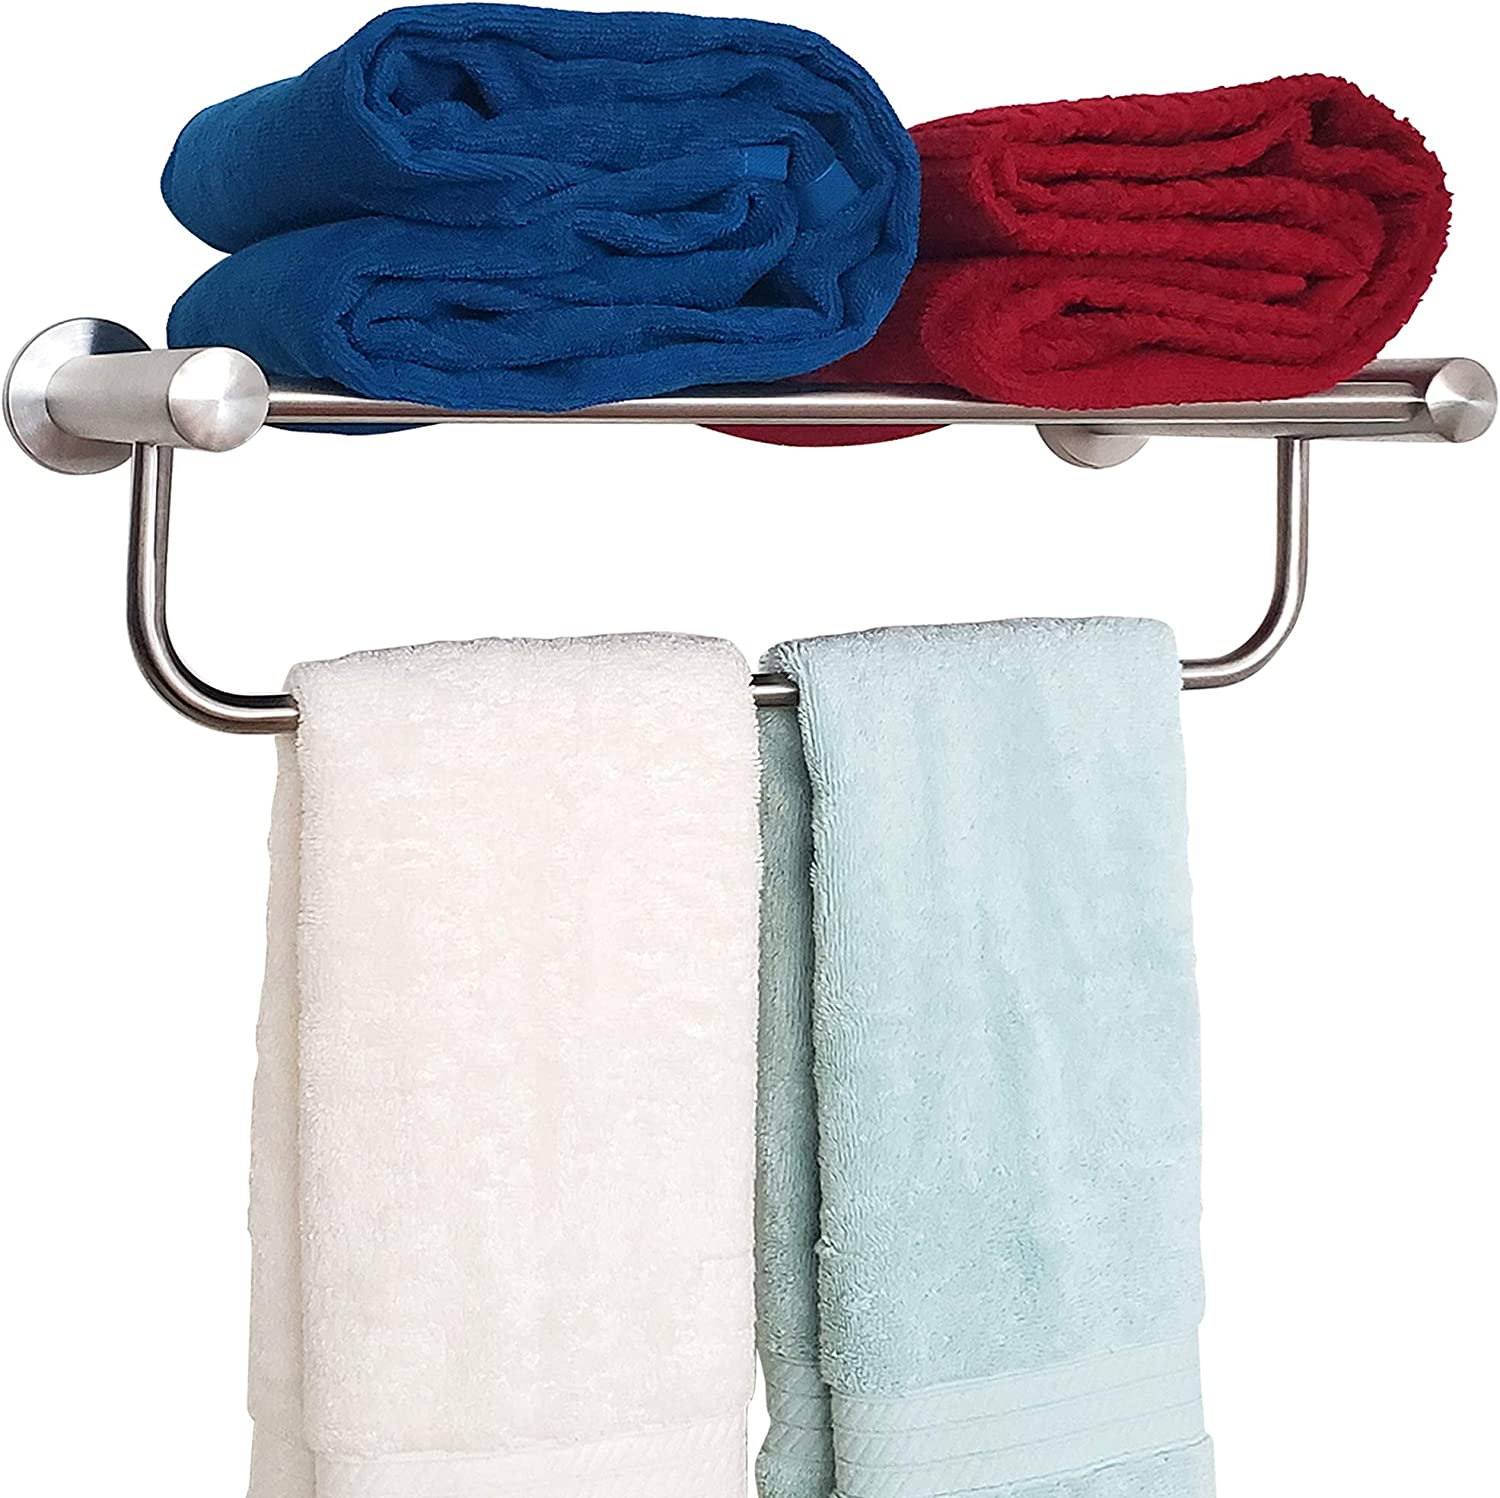 SAFETY+BEAUTY Bathroom Towel Rack, Stainless Steel Constructed Rust-Proof Shelf with Built-in Towel Bar, 16 inches Brushed Nickel